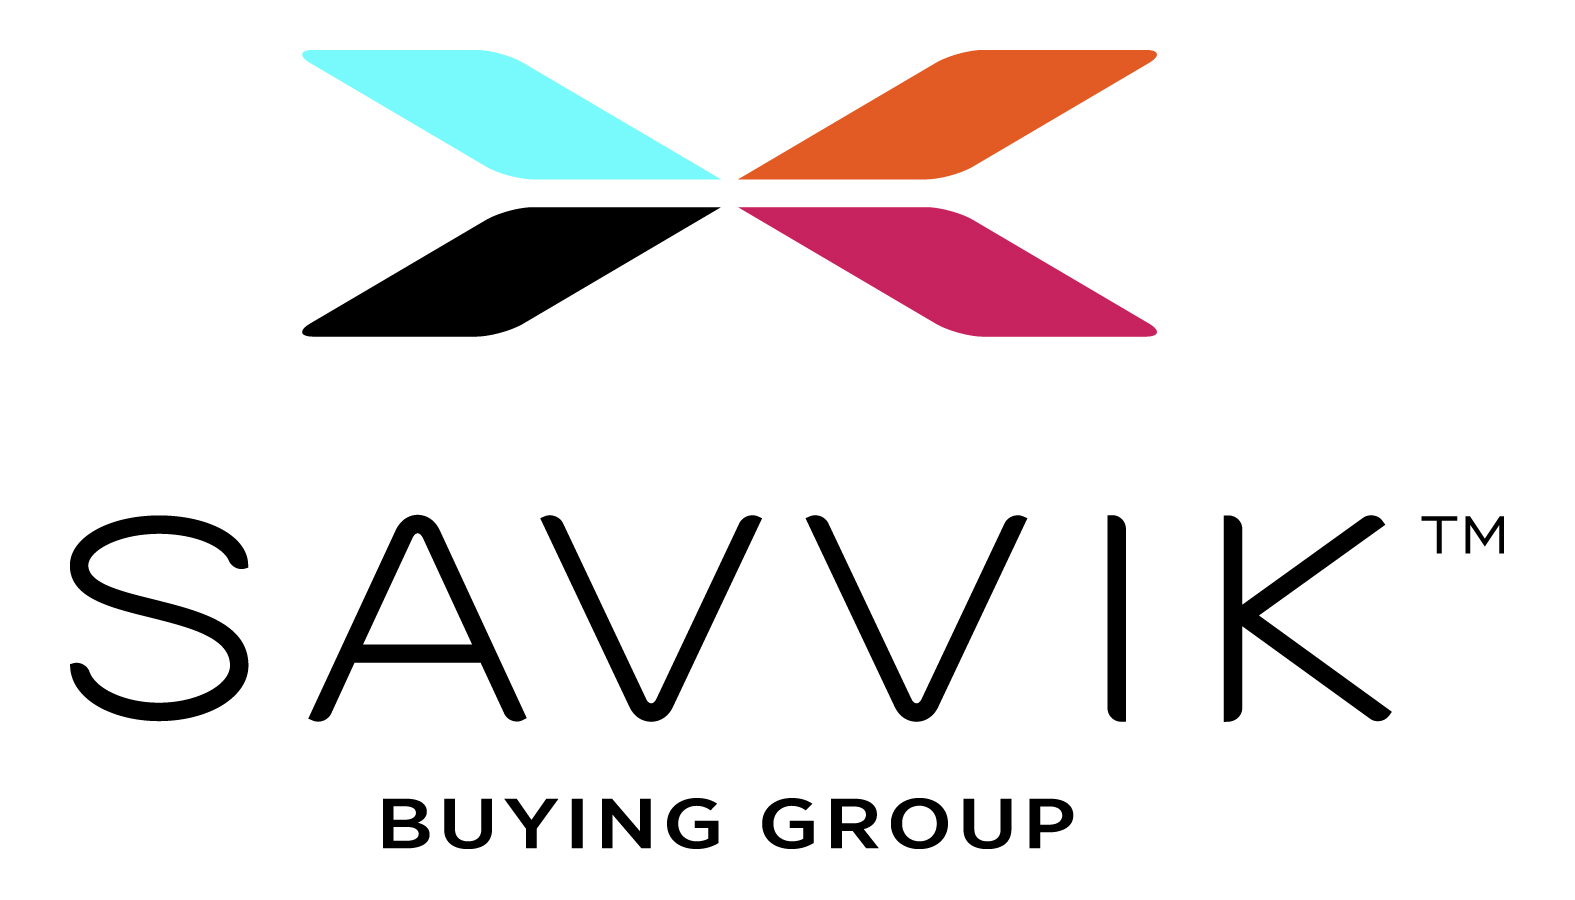 Savvik_Logo_Color March.jpg.jpeg